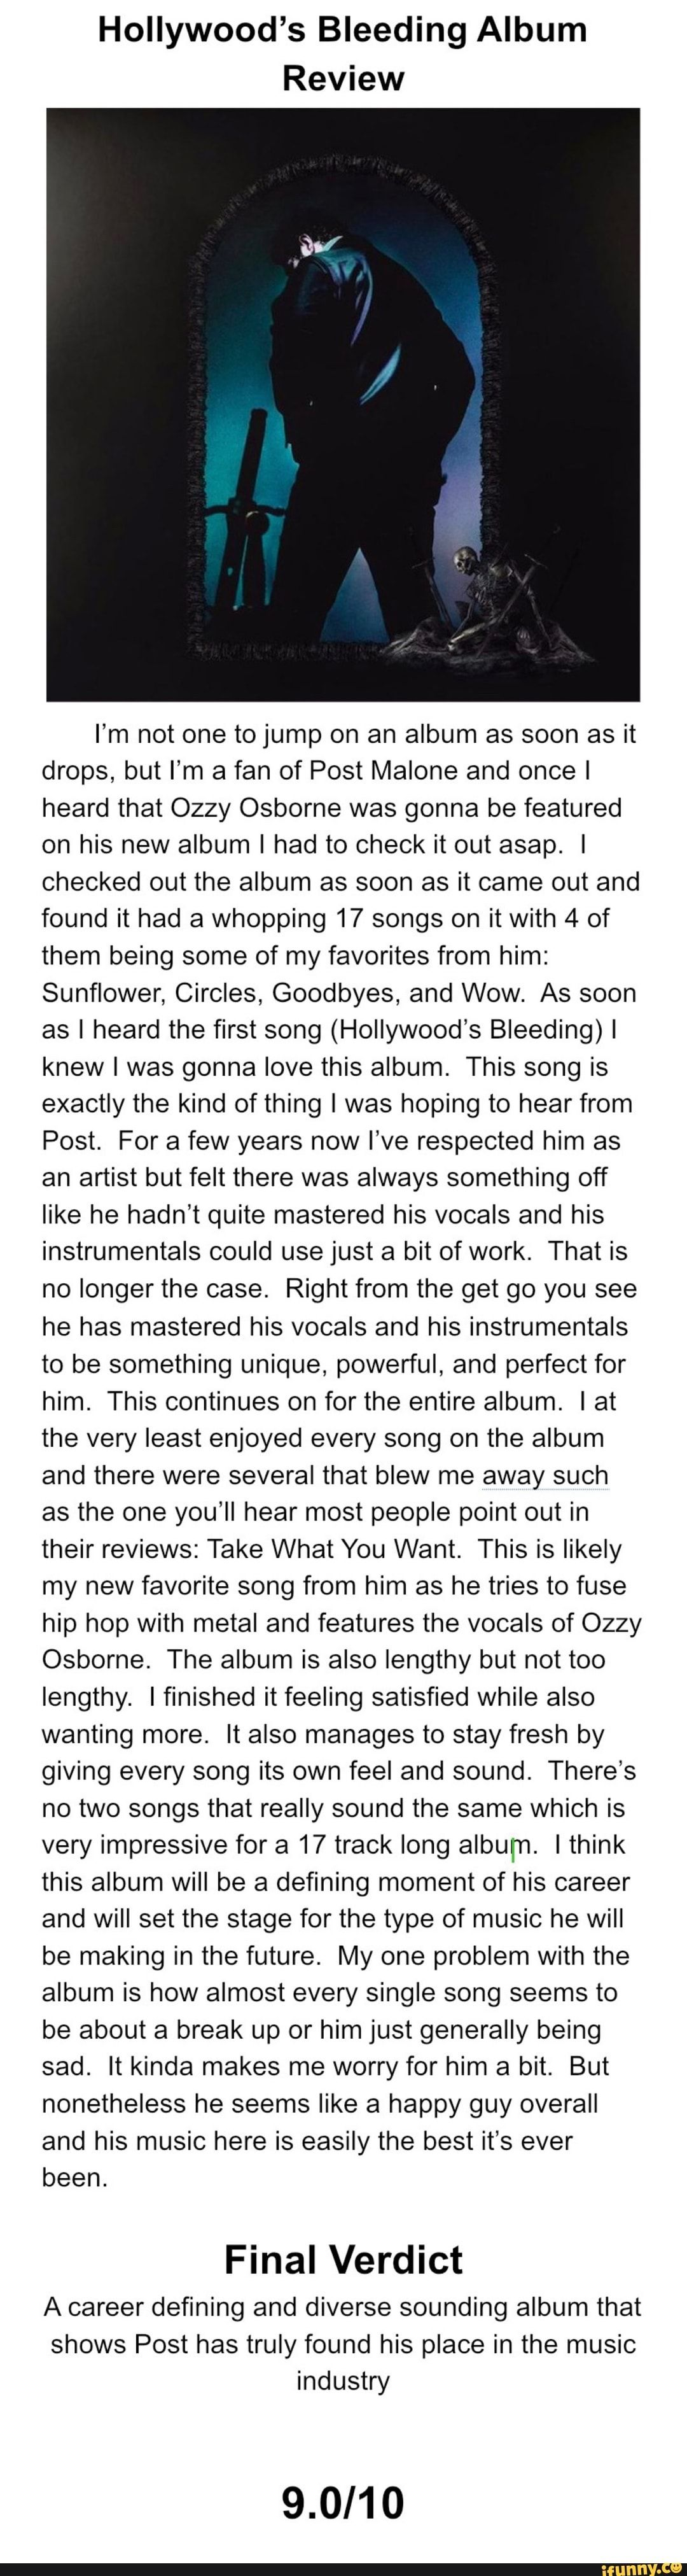 Hollywood's Bleeding Album Review I'm not one tojump on an